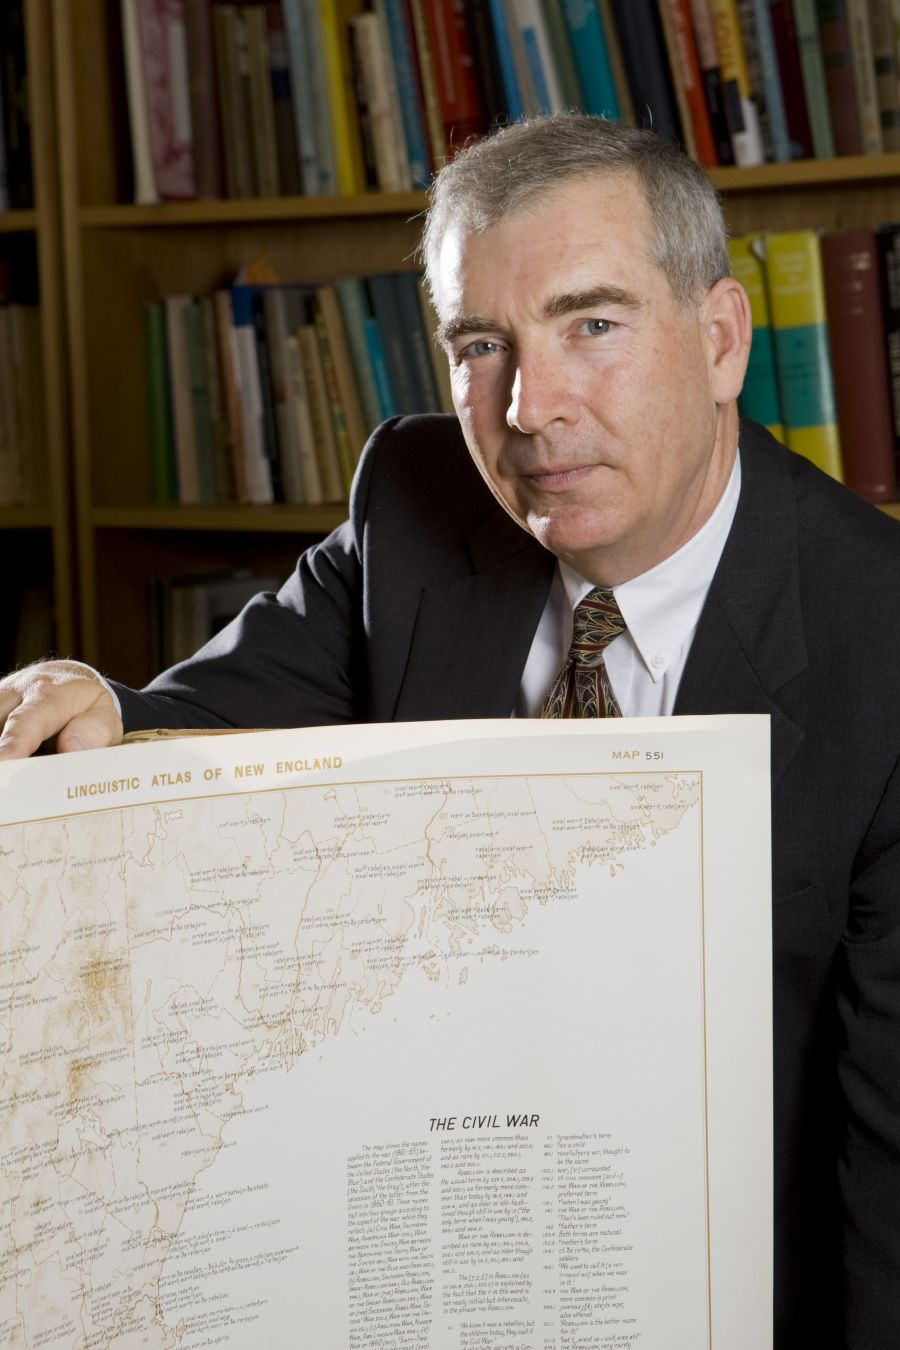 Bill Kretzschmar, editor of the Linguistic Atlas Project, holds a Linguistic Map of New England. In 2012, the University of Georgia recognized Kretzschmar's work on the LAP by presenting him with the Albert Christ-Janer Award for outstanding work in the humanities. Image courtesy of the Linguistic Atlas Project.